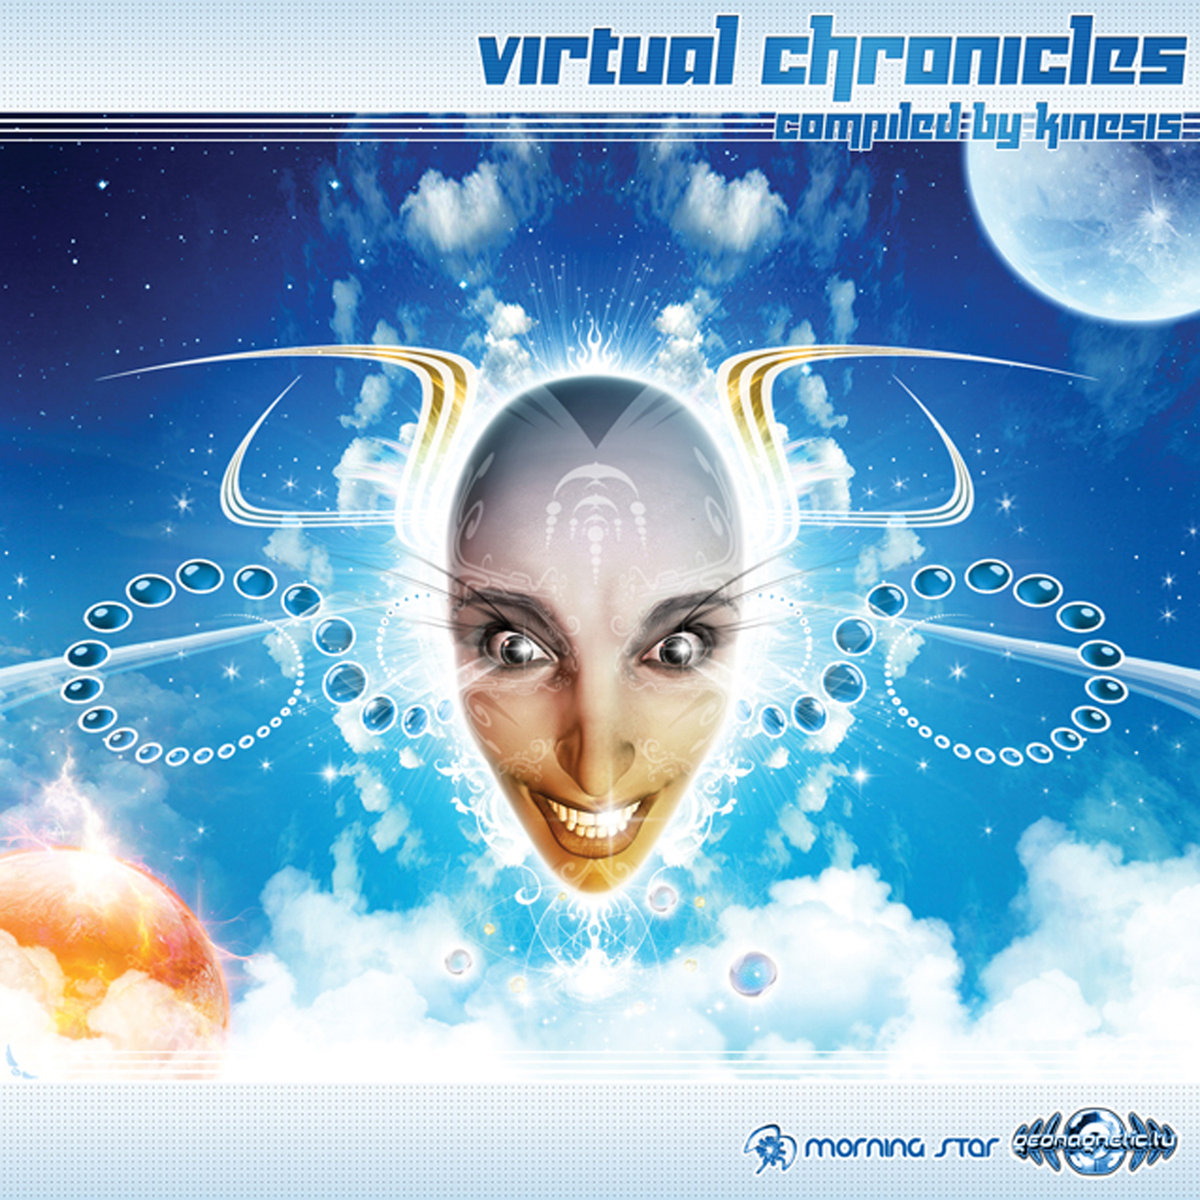 Kinesis - Virtual Chronicles @ 'Various Artists - Virtual Chronicles (Compiled by Kinesis)' album (electronic, goa)